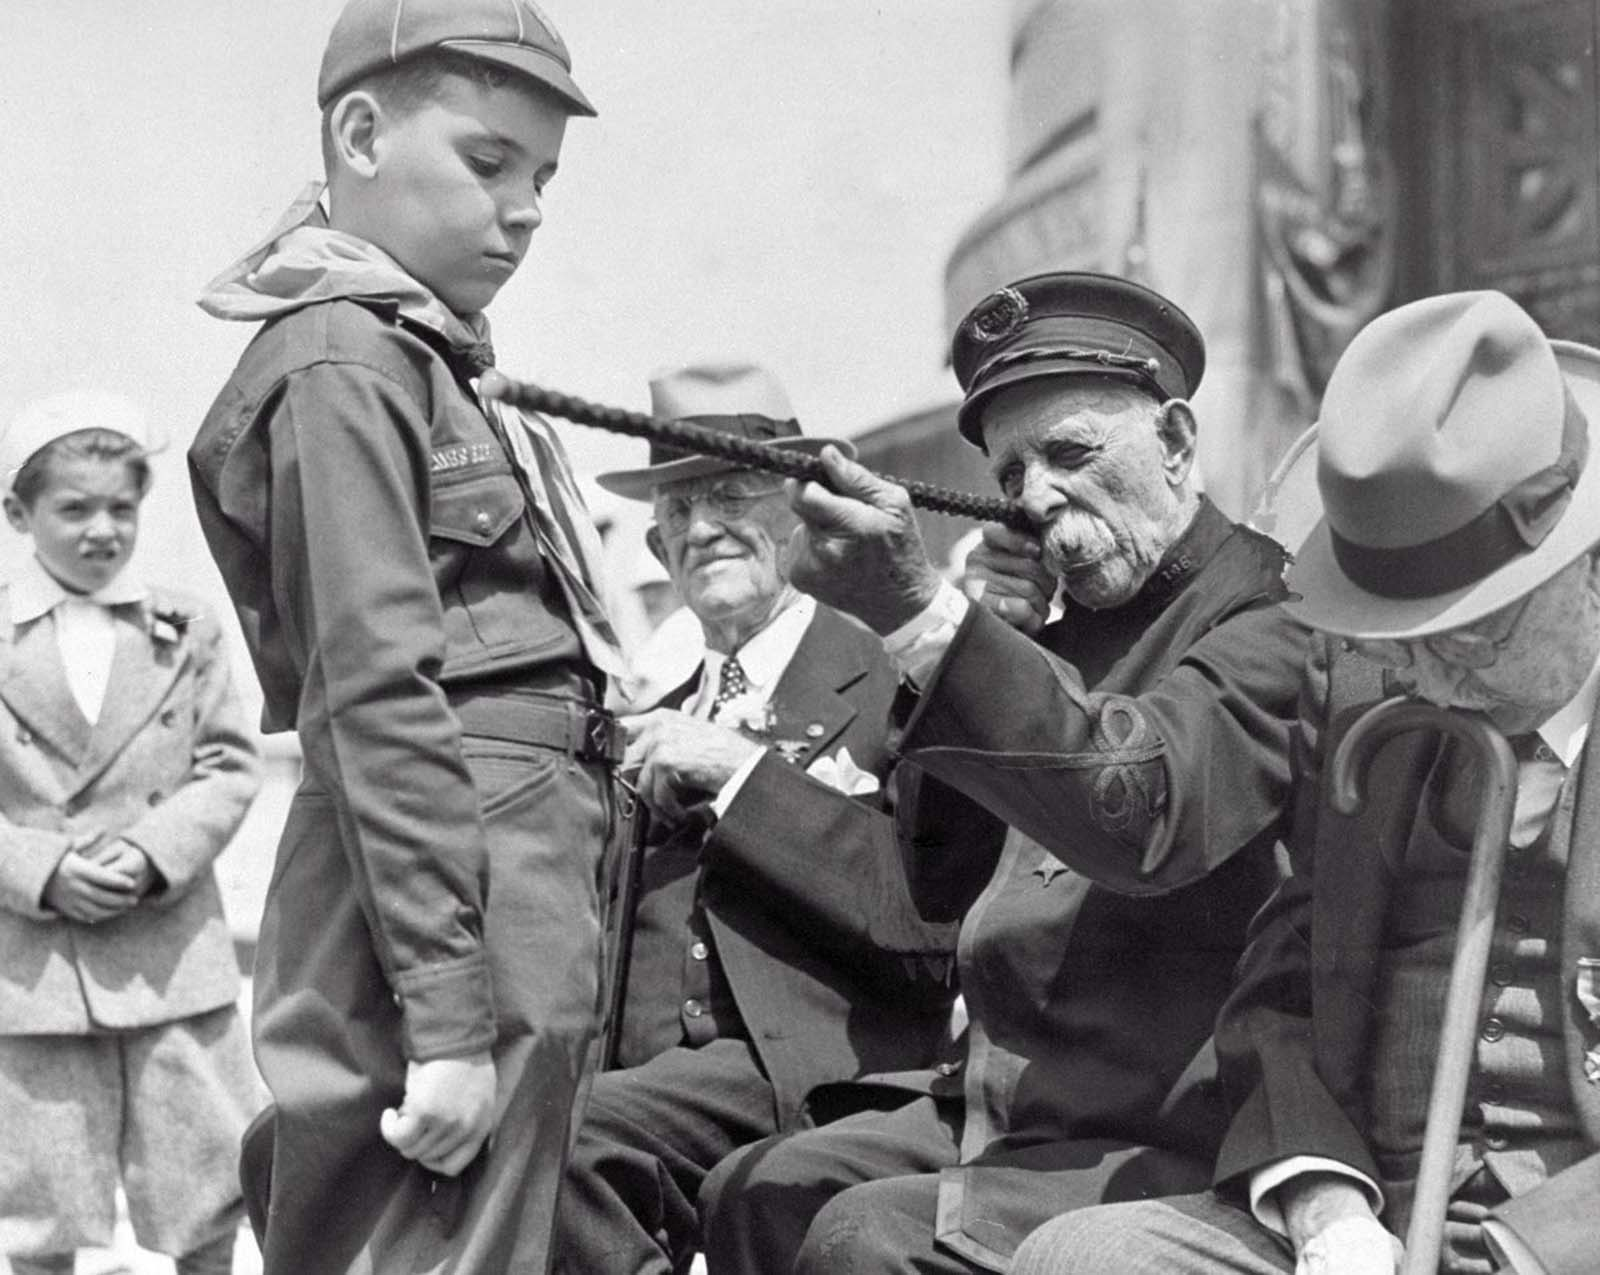 At the Memorial Day parade, Civil War veteran, George W. Collier, 97, shows Alwin Sharr, 9, a boy scout cub, how he aimed his rifle during the war. 1939.